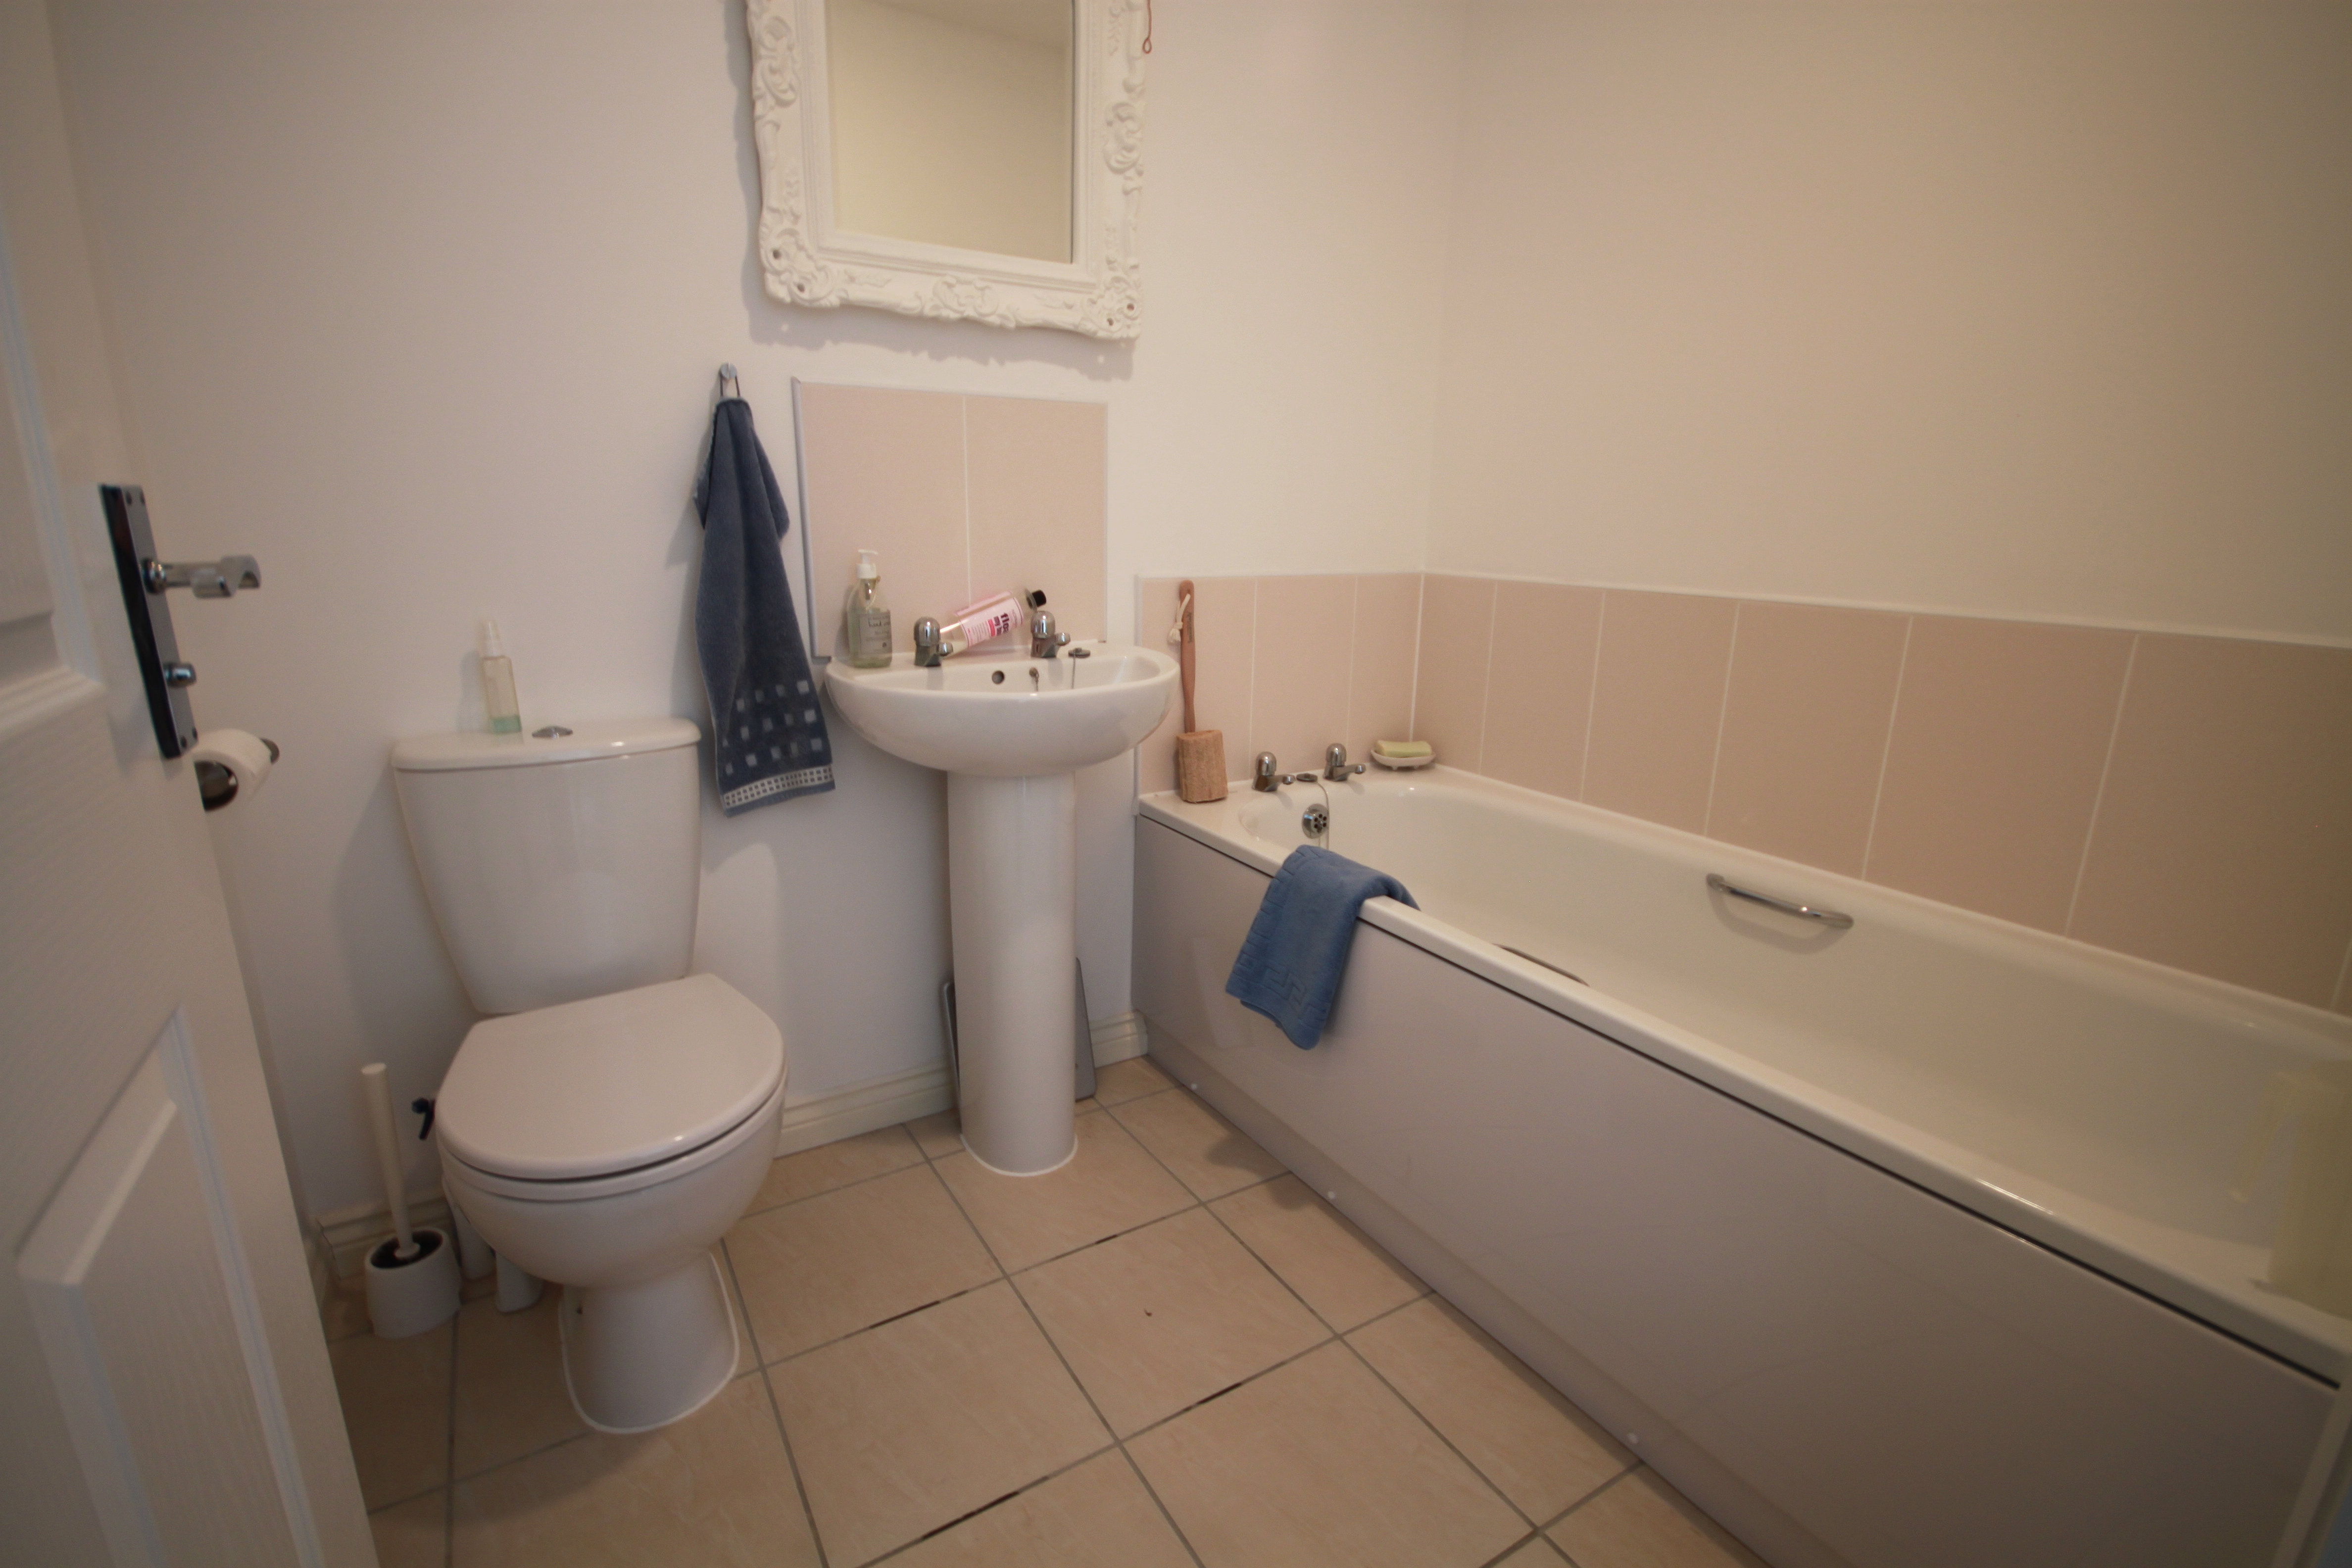 Cranberryhome Interior Design And Home Staging In Milton Keynes Bathroom Before Interior Design